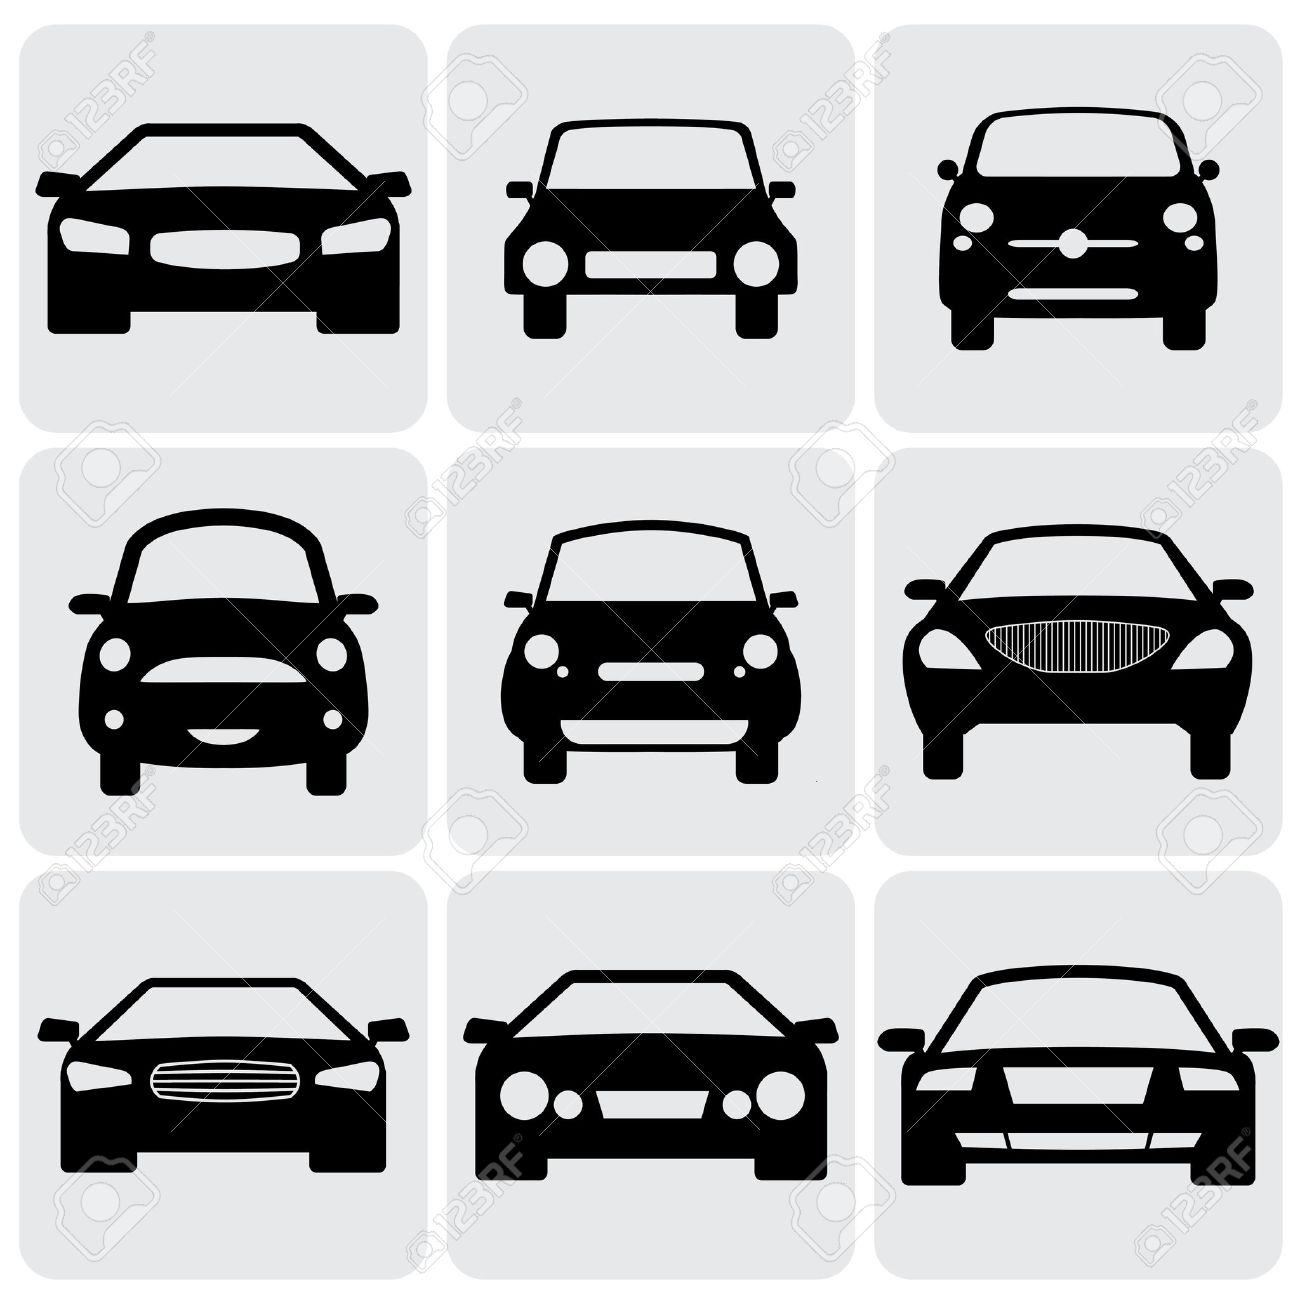 front side of car clipart #6